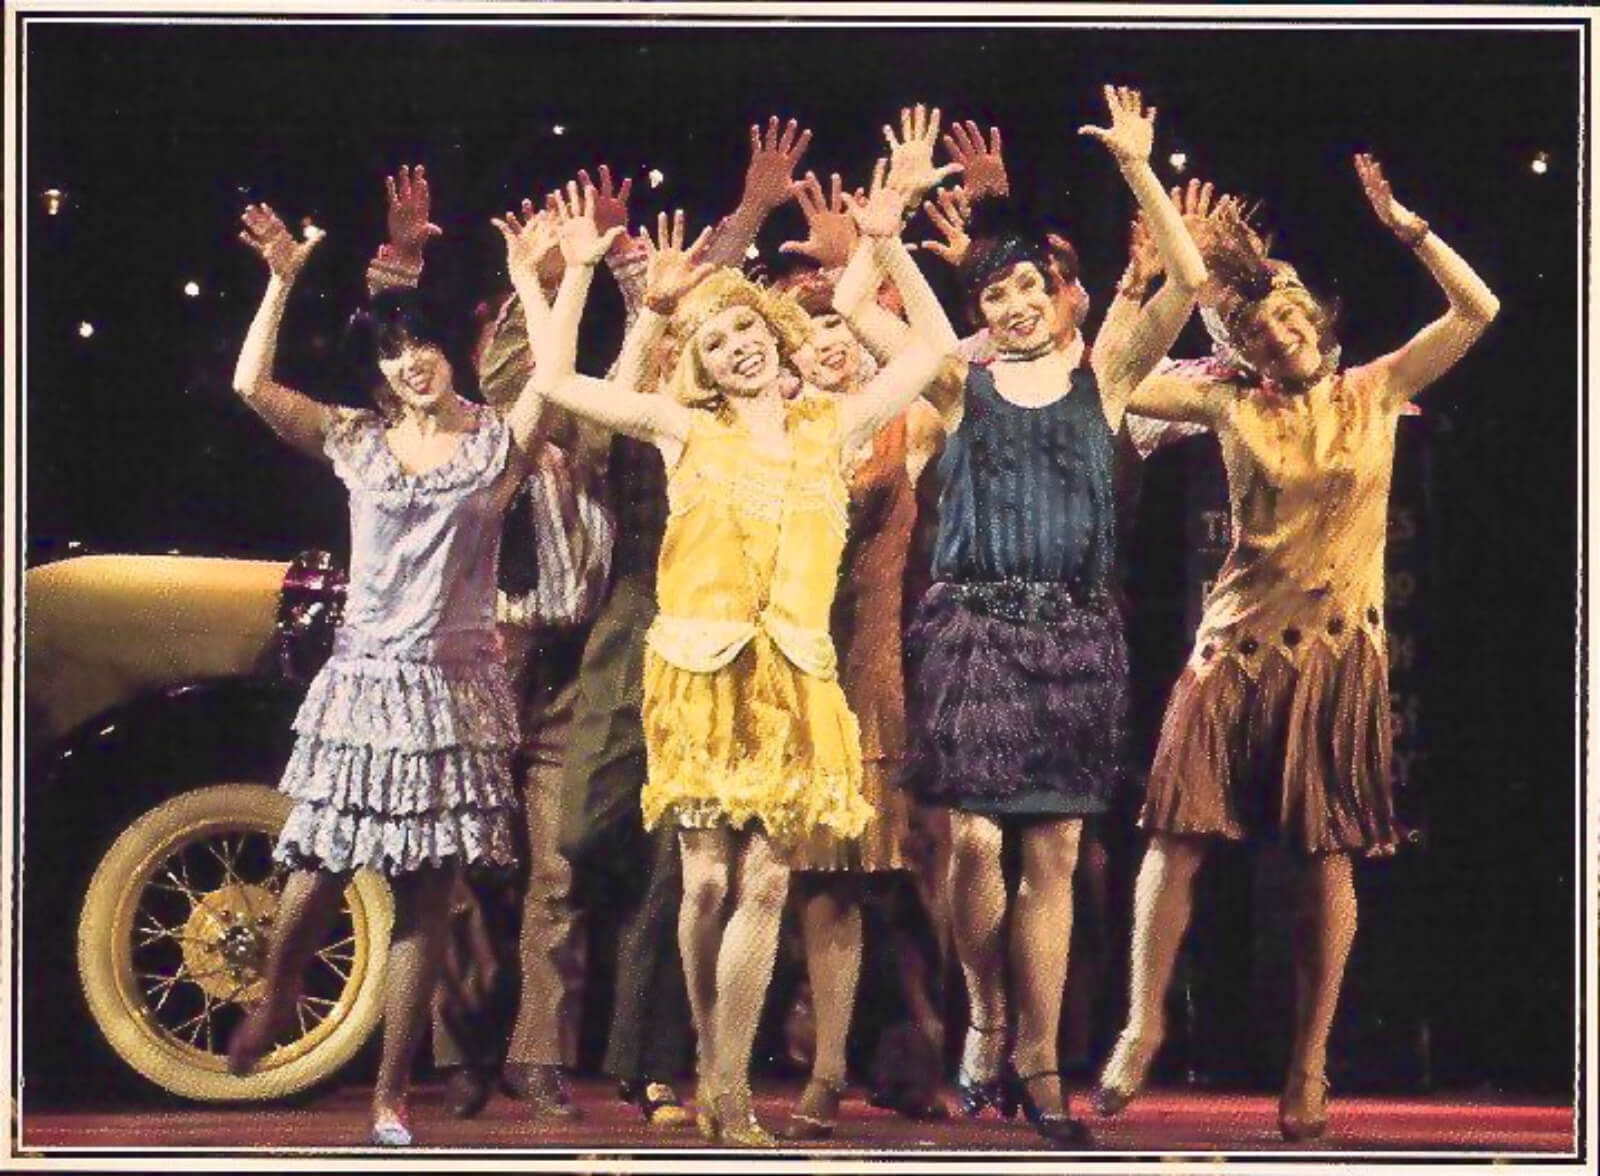 Kim (Tammy Amerson)and the beautiful ladies dancing the Charleston dancing in their elegant outfits, with arms up in the air, waving happily.